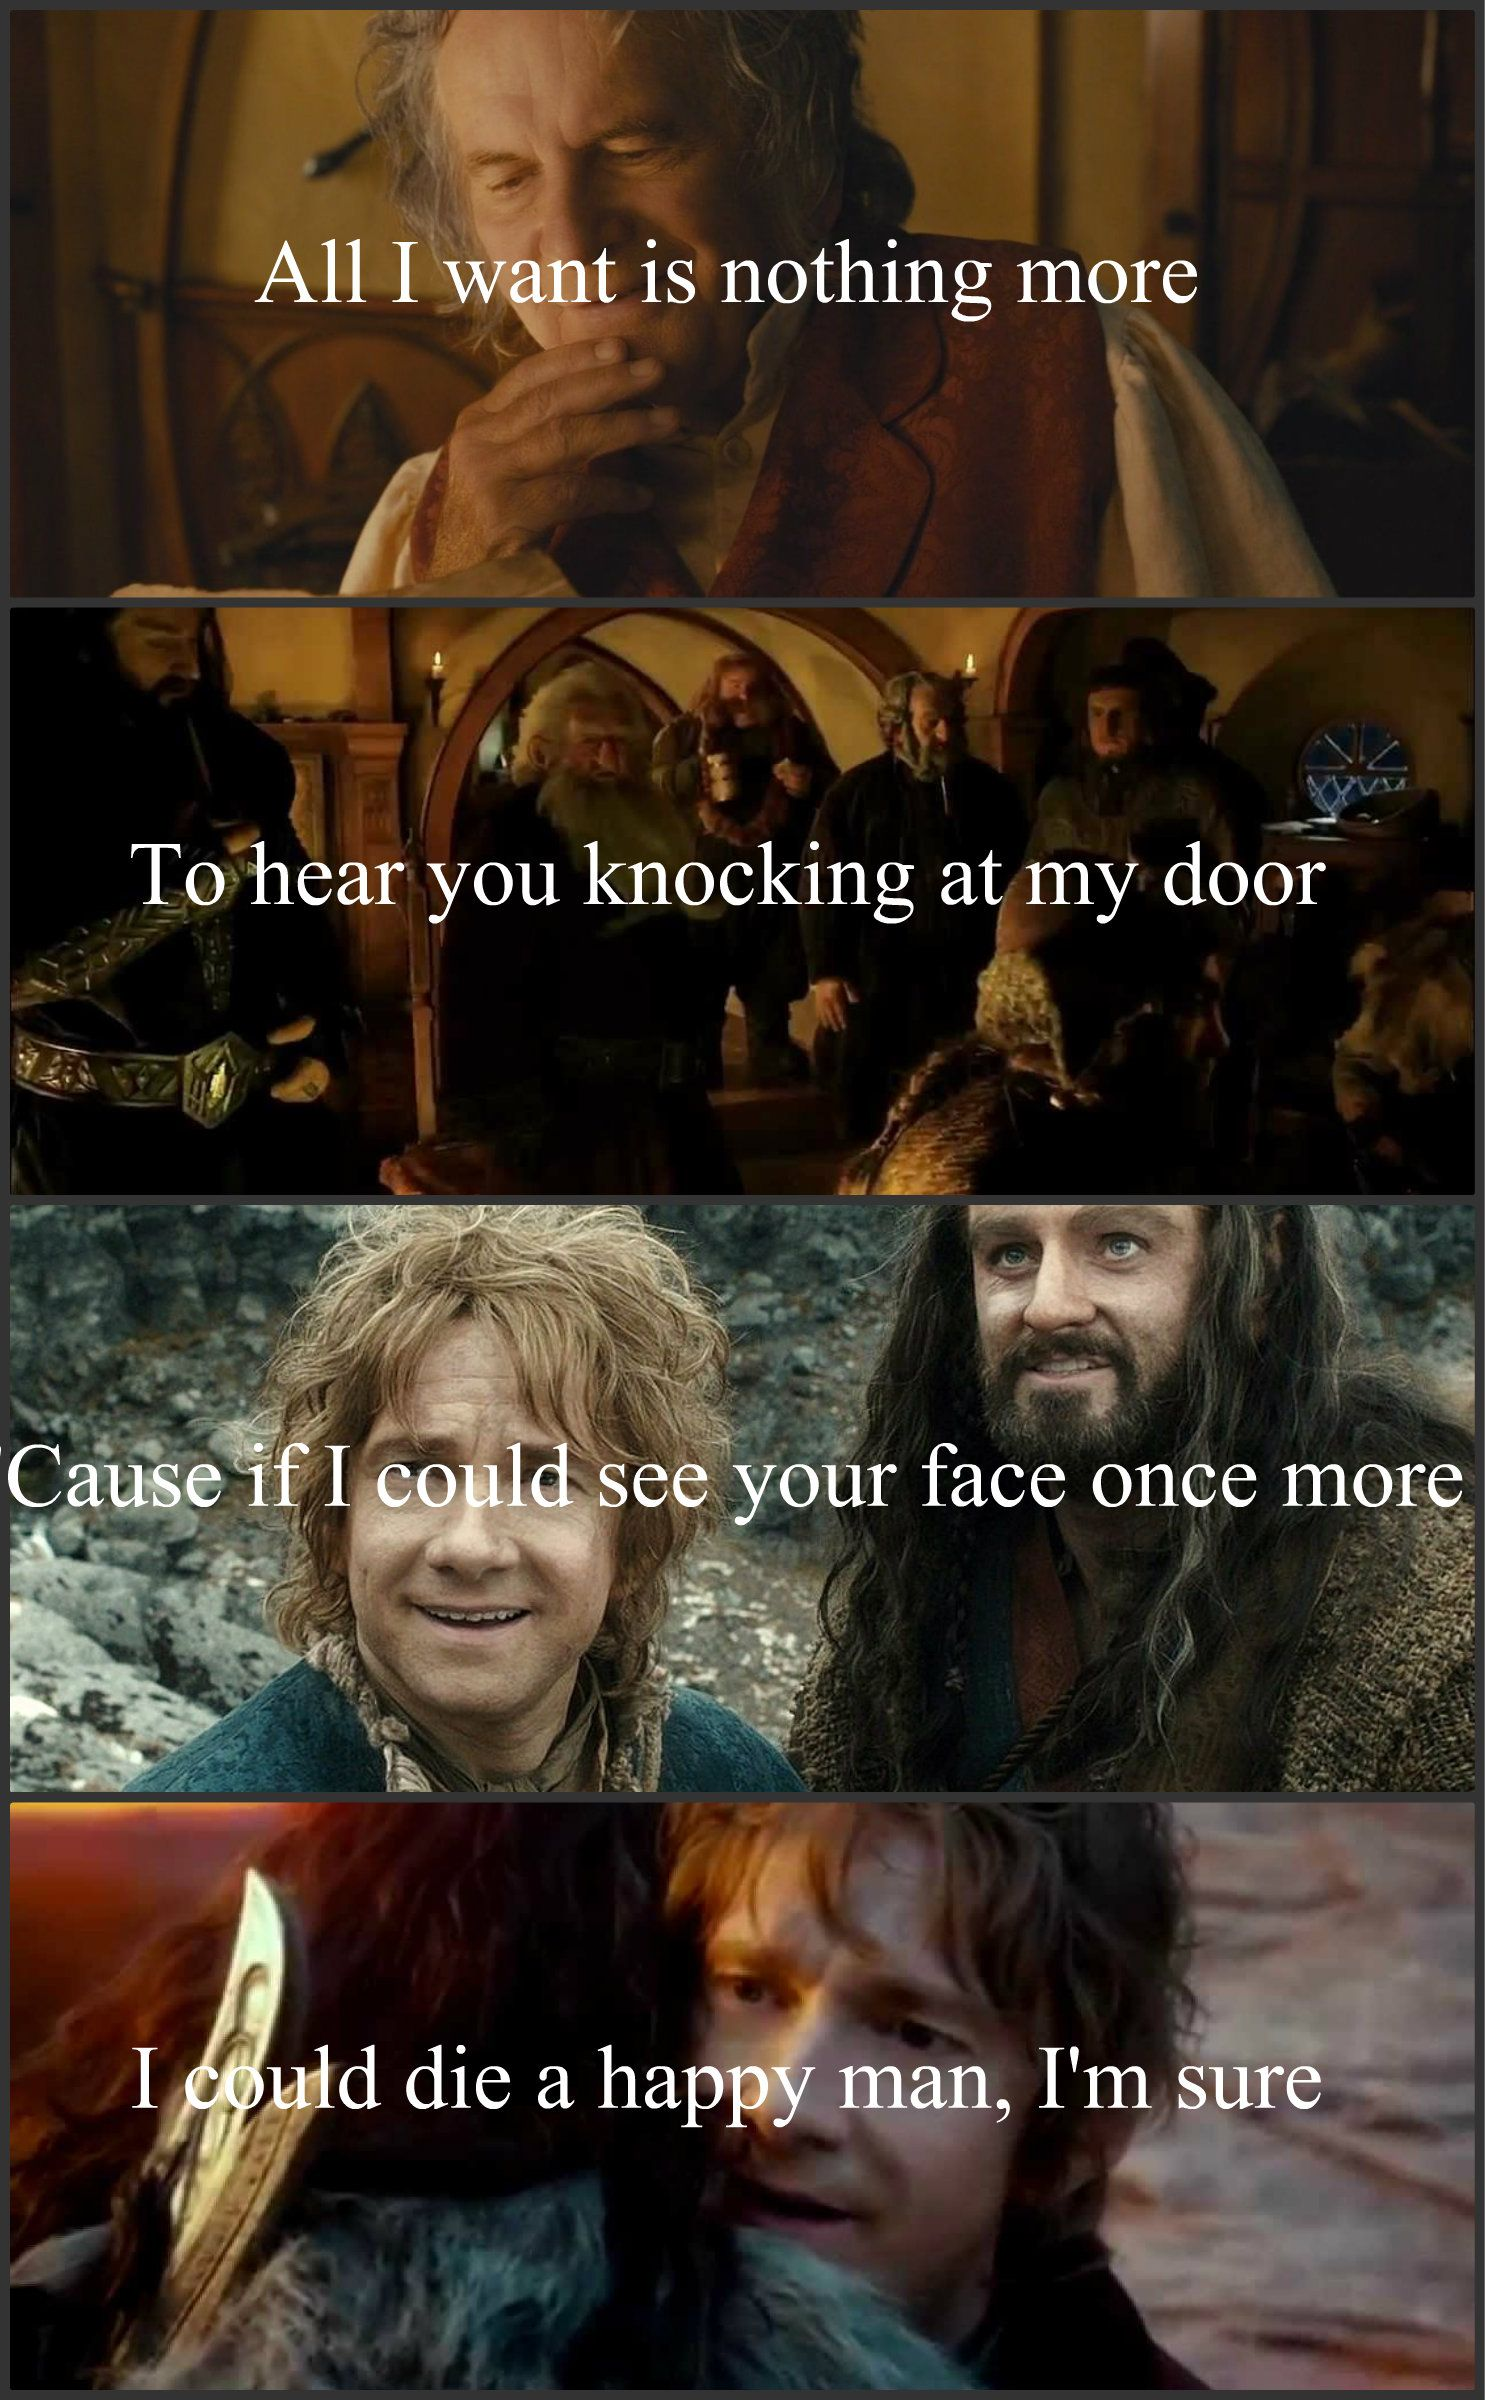 All I Want By Kodaline Lyrics For The Hobbit This Breaks My